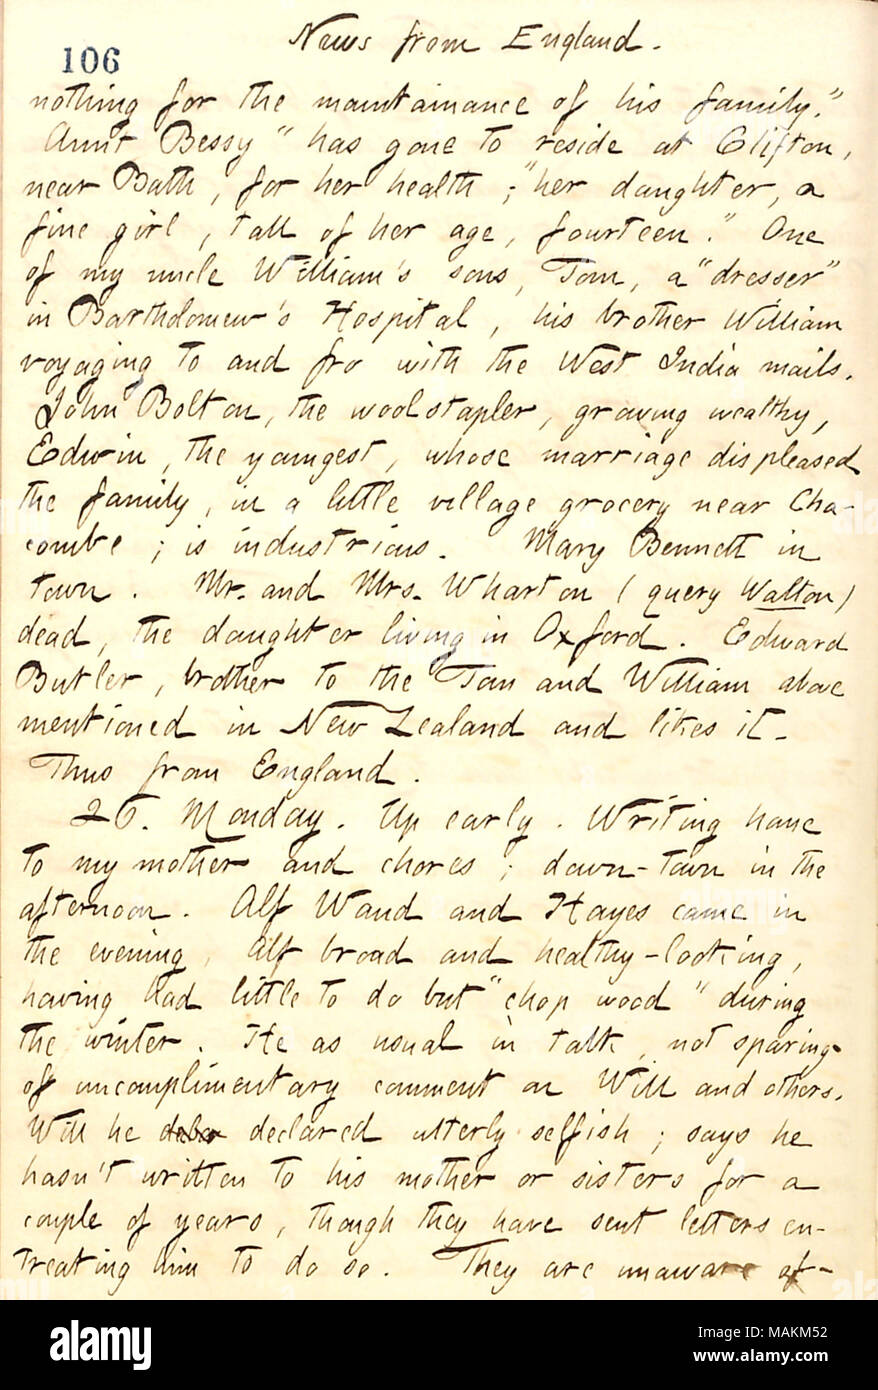 Describes a letter from his mother transcription news from england describes a letter from his mother transcription news from england nothing for the thecheapjerseys Gallery